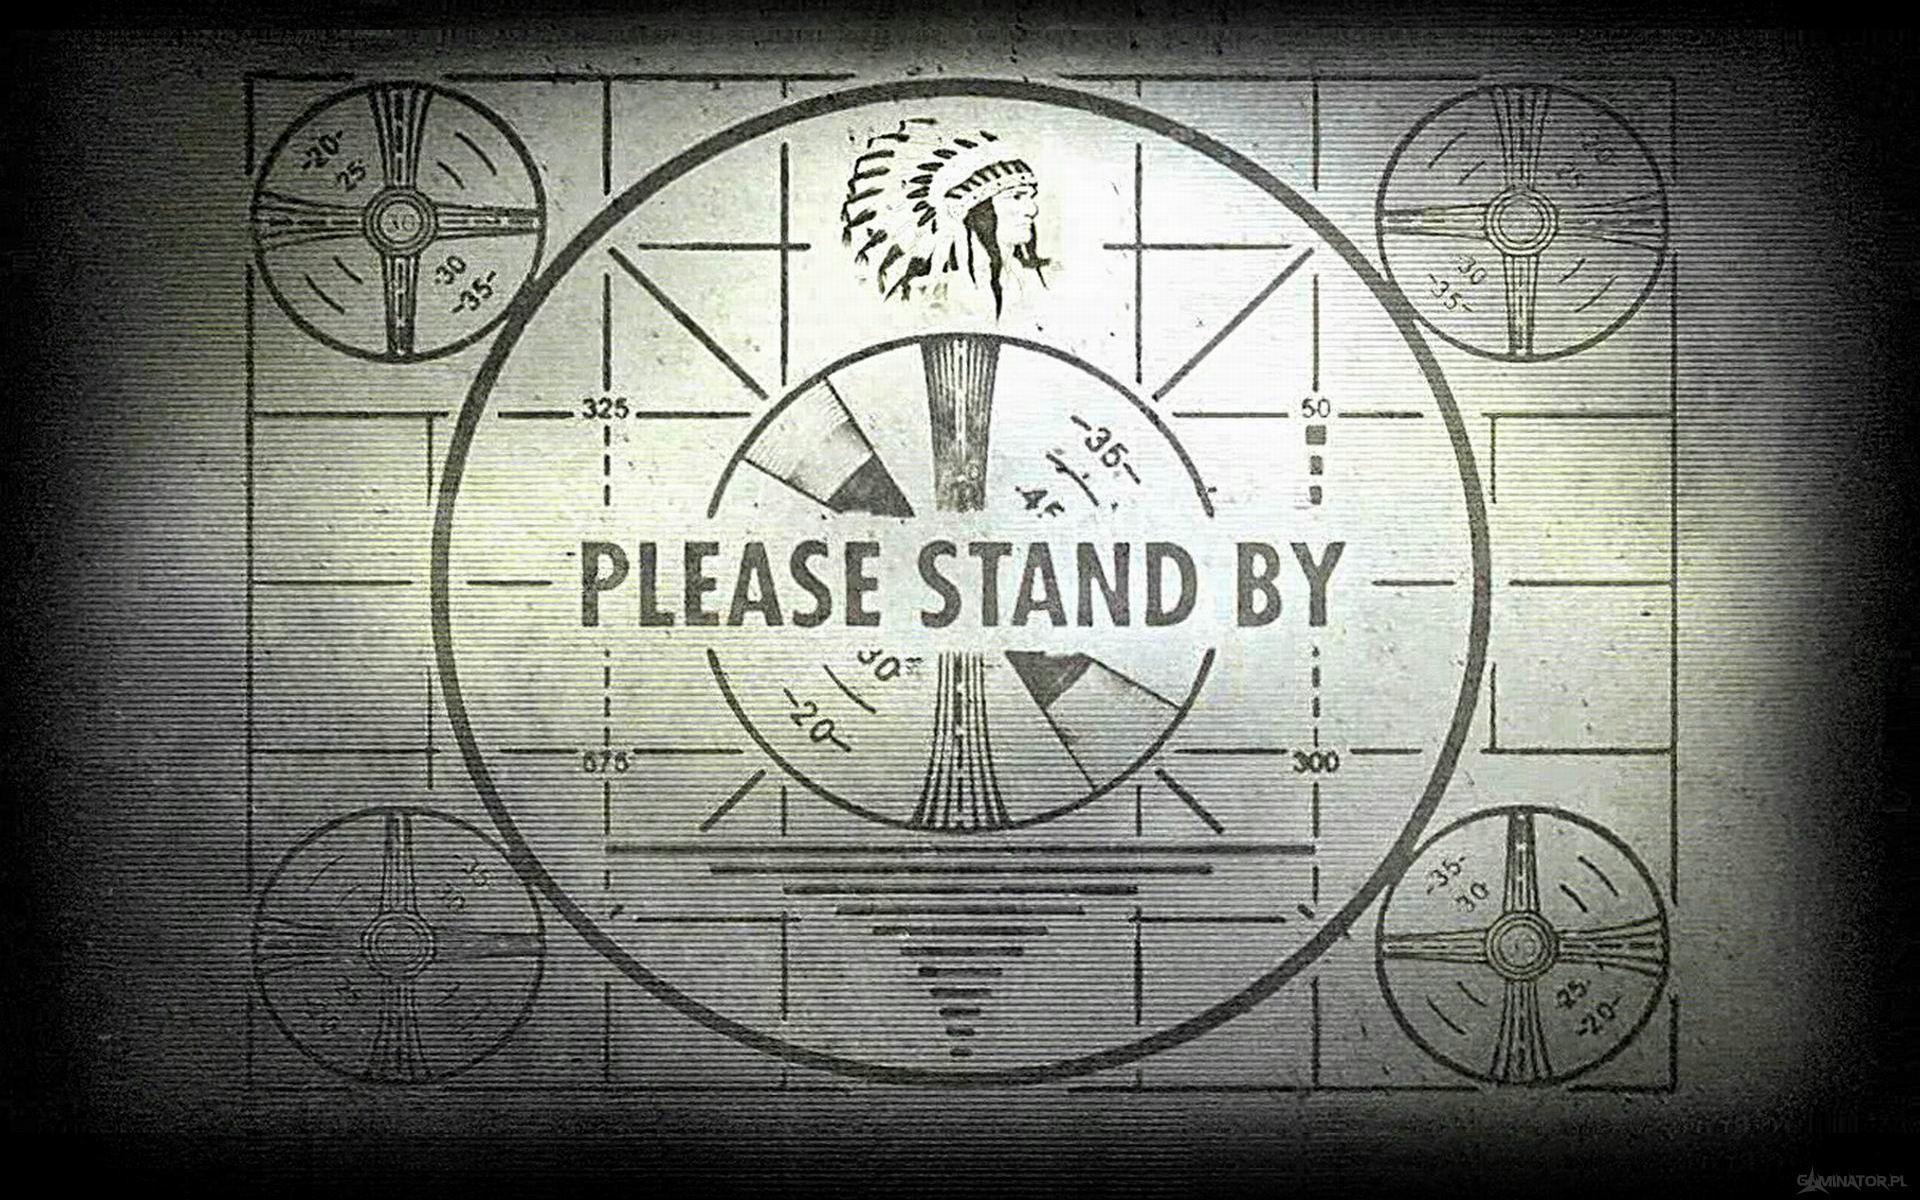 Wallpapers Fallout - Wallpaper Cave